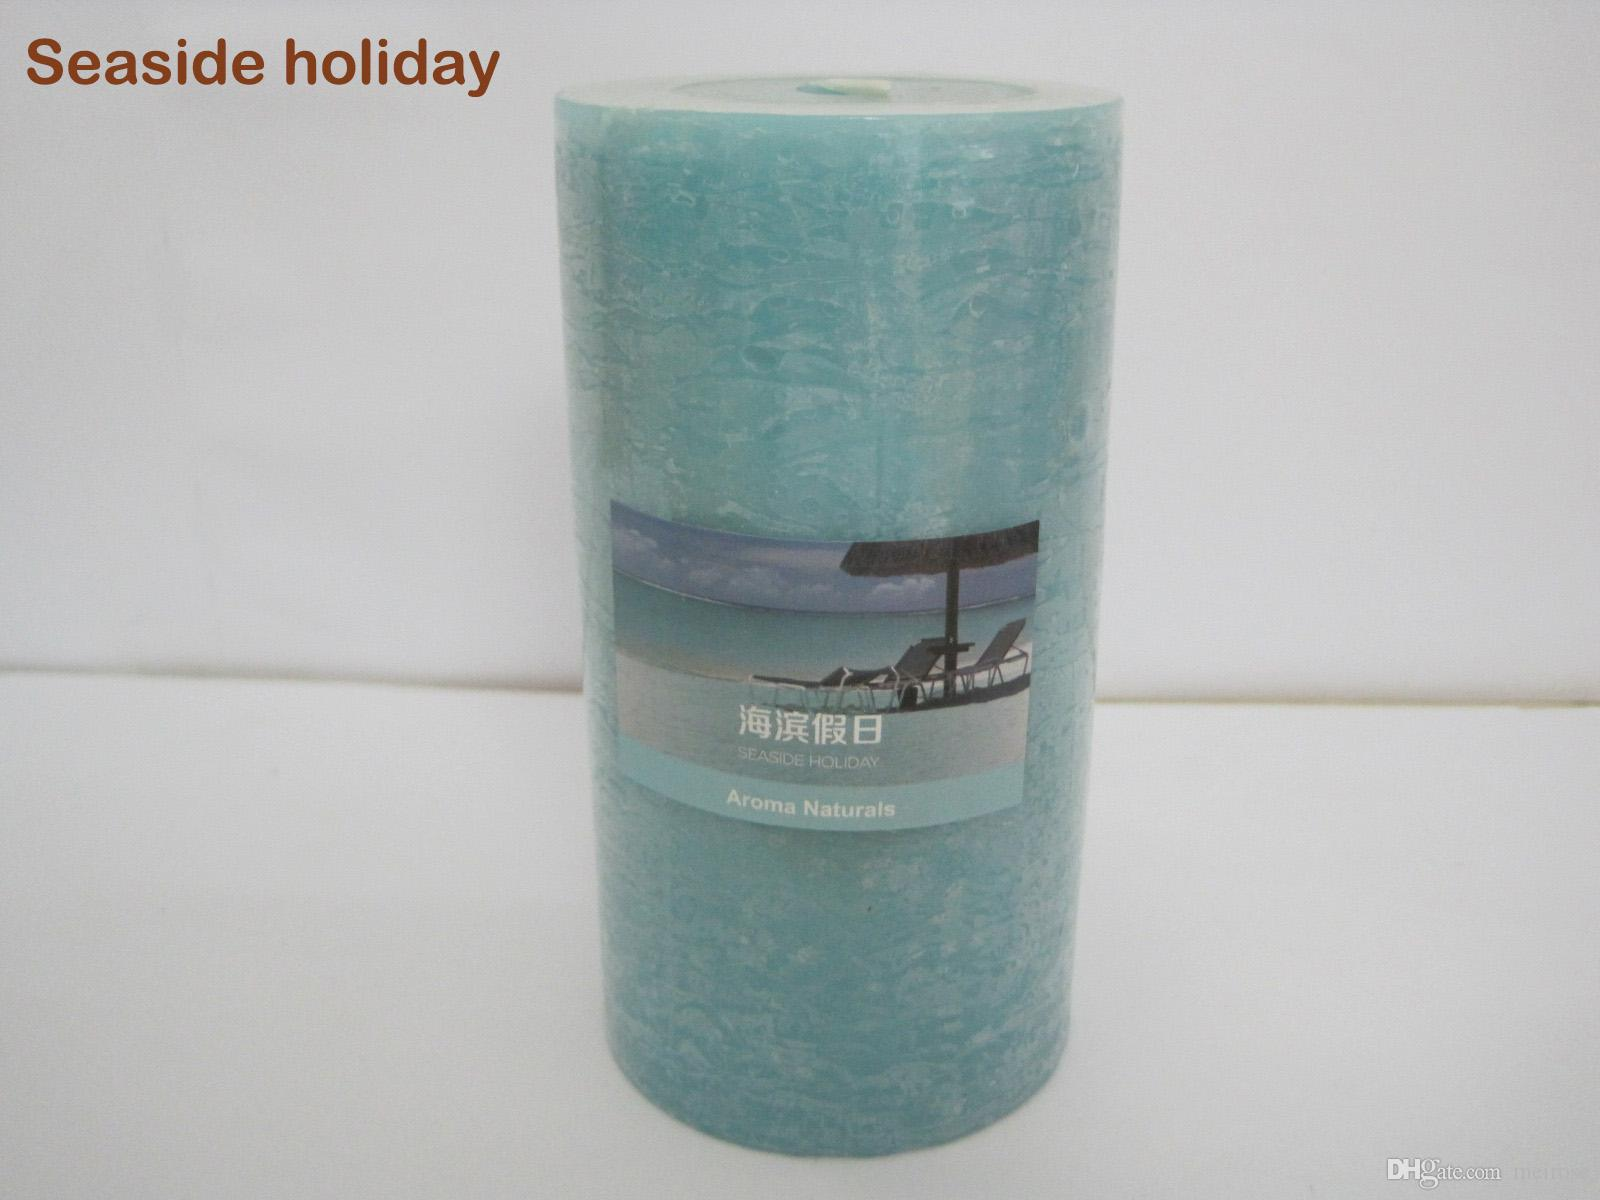 25 Hours Burning time Scented Candles Pillar Candle With A Variety Of Fragrance Aroma Paraffin Wax Aromatherapy Pillar Candles P.C:75-1008